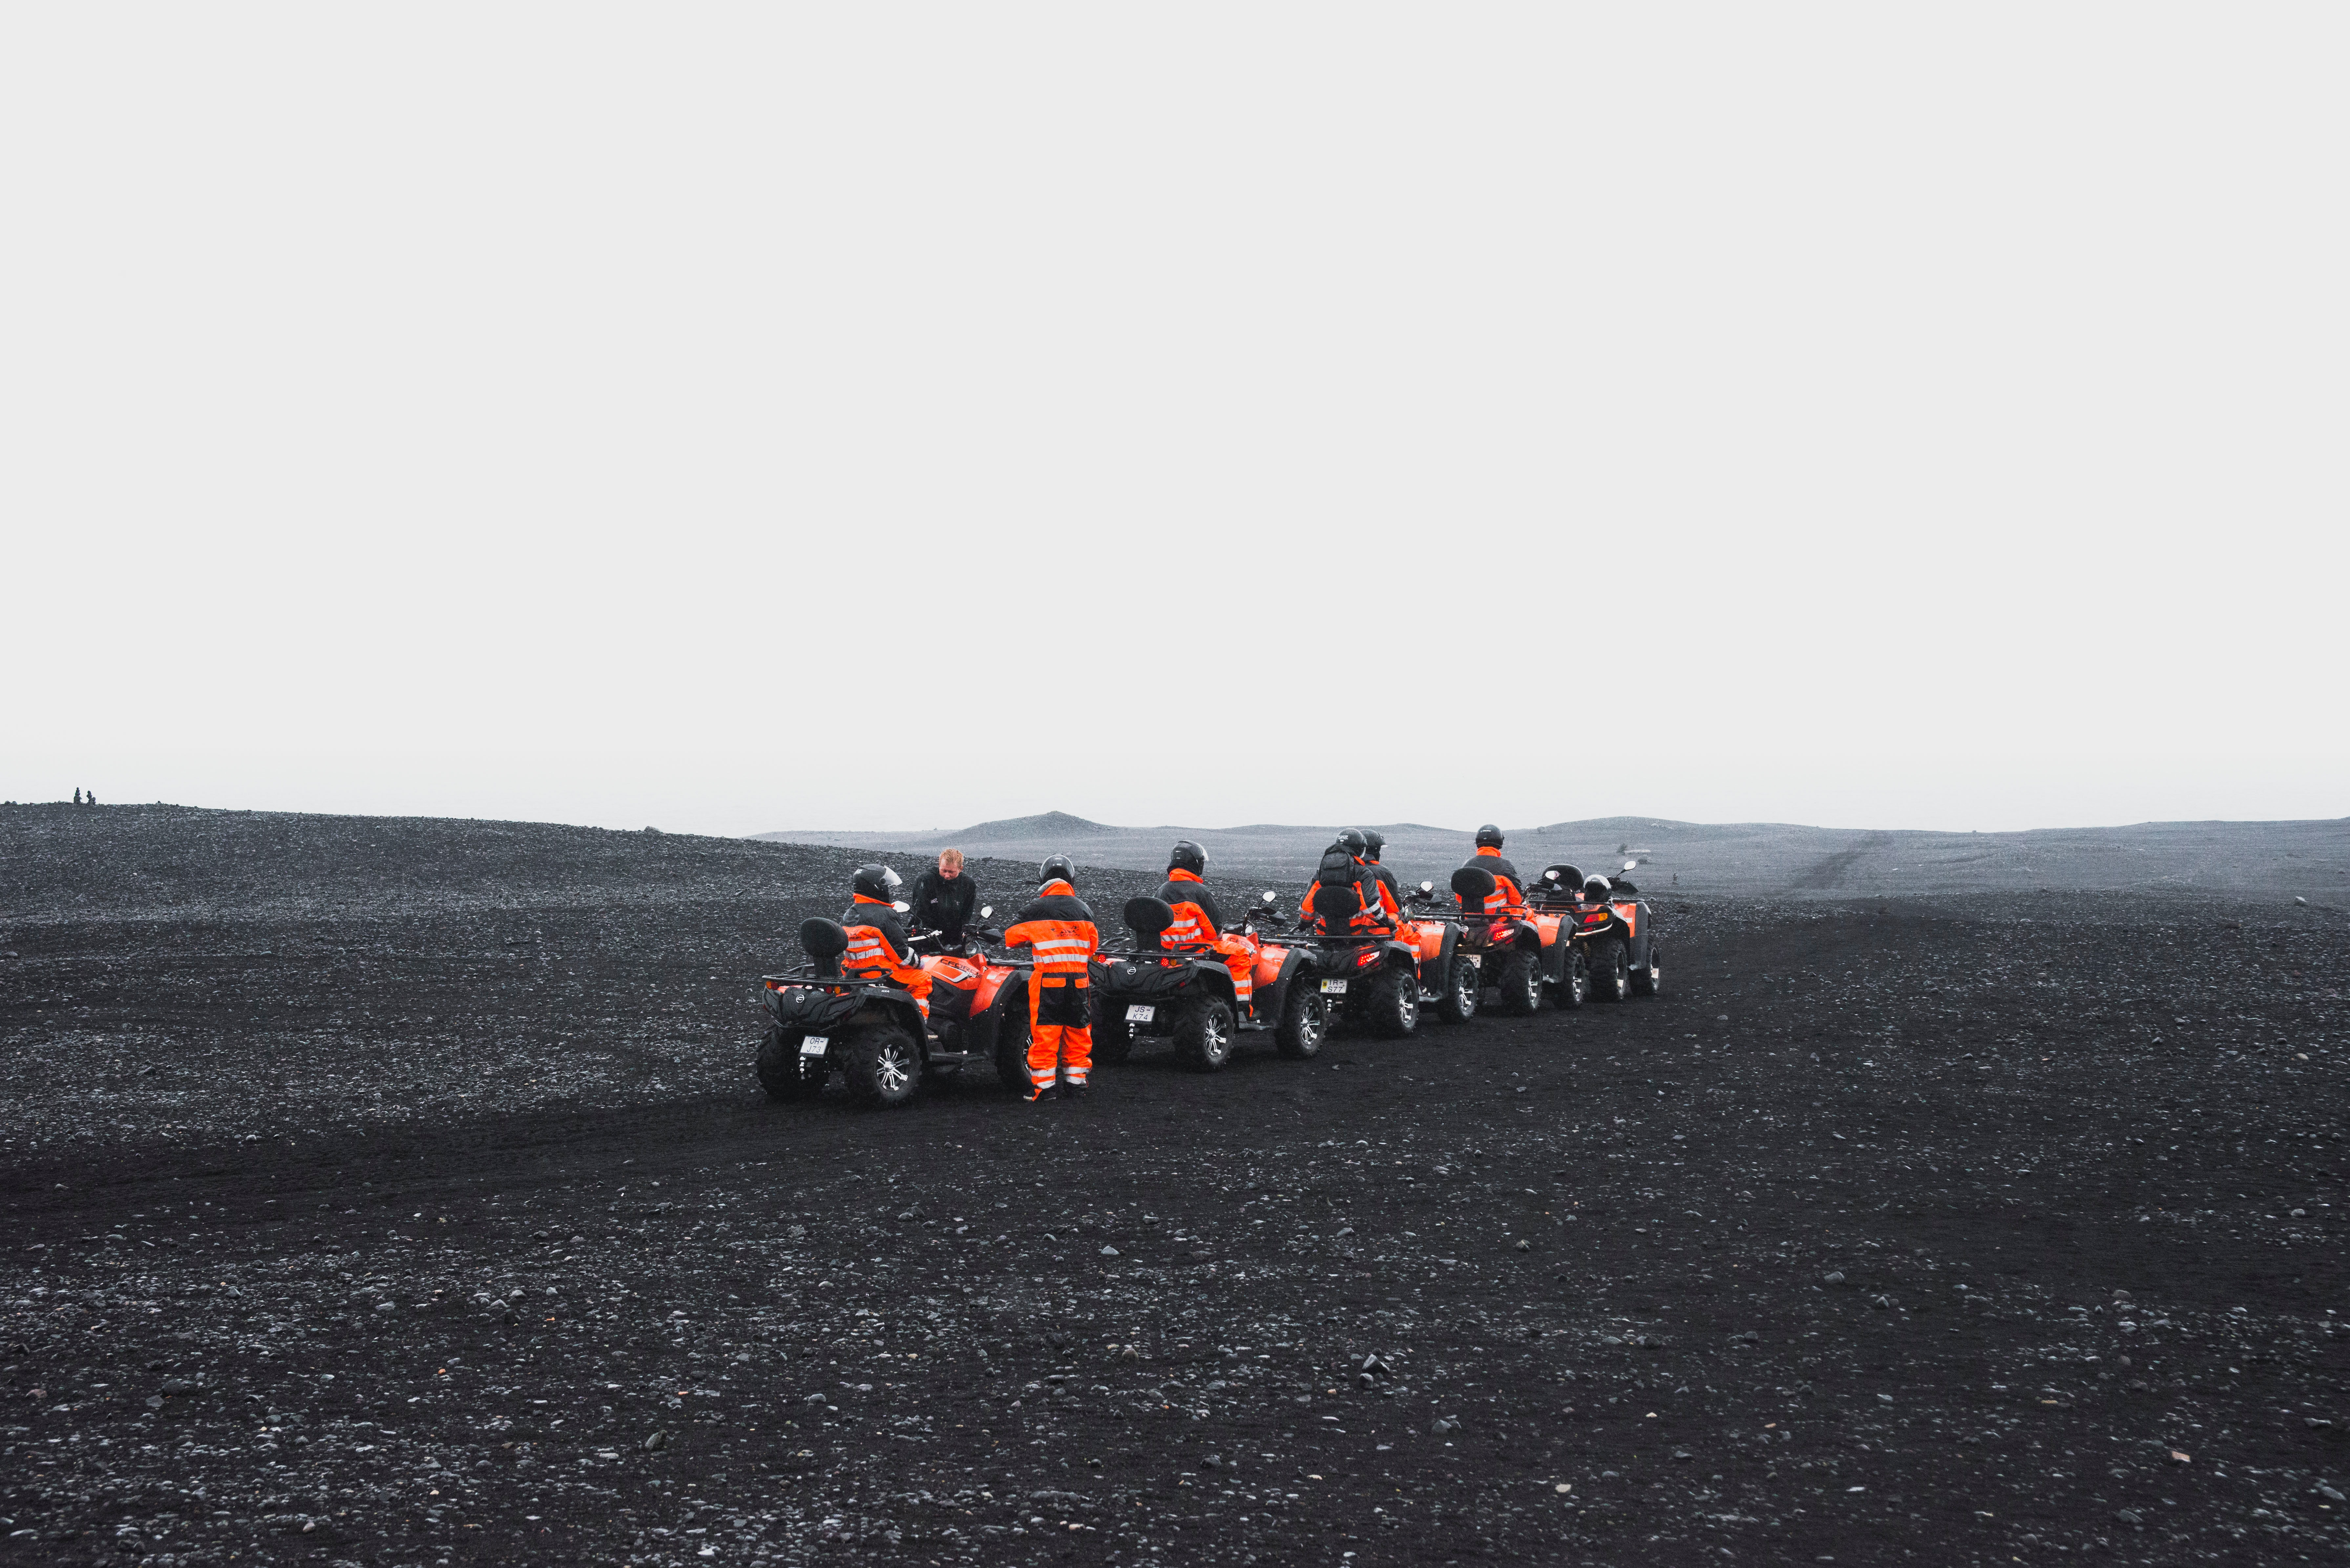 Buggy ride,  Adventurous Things To Do In Iceland